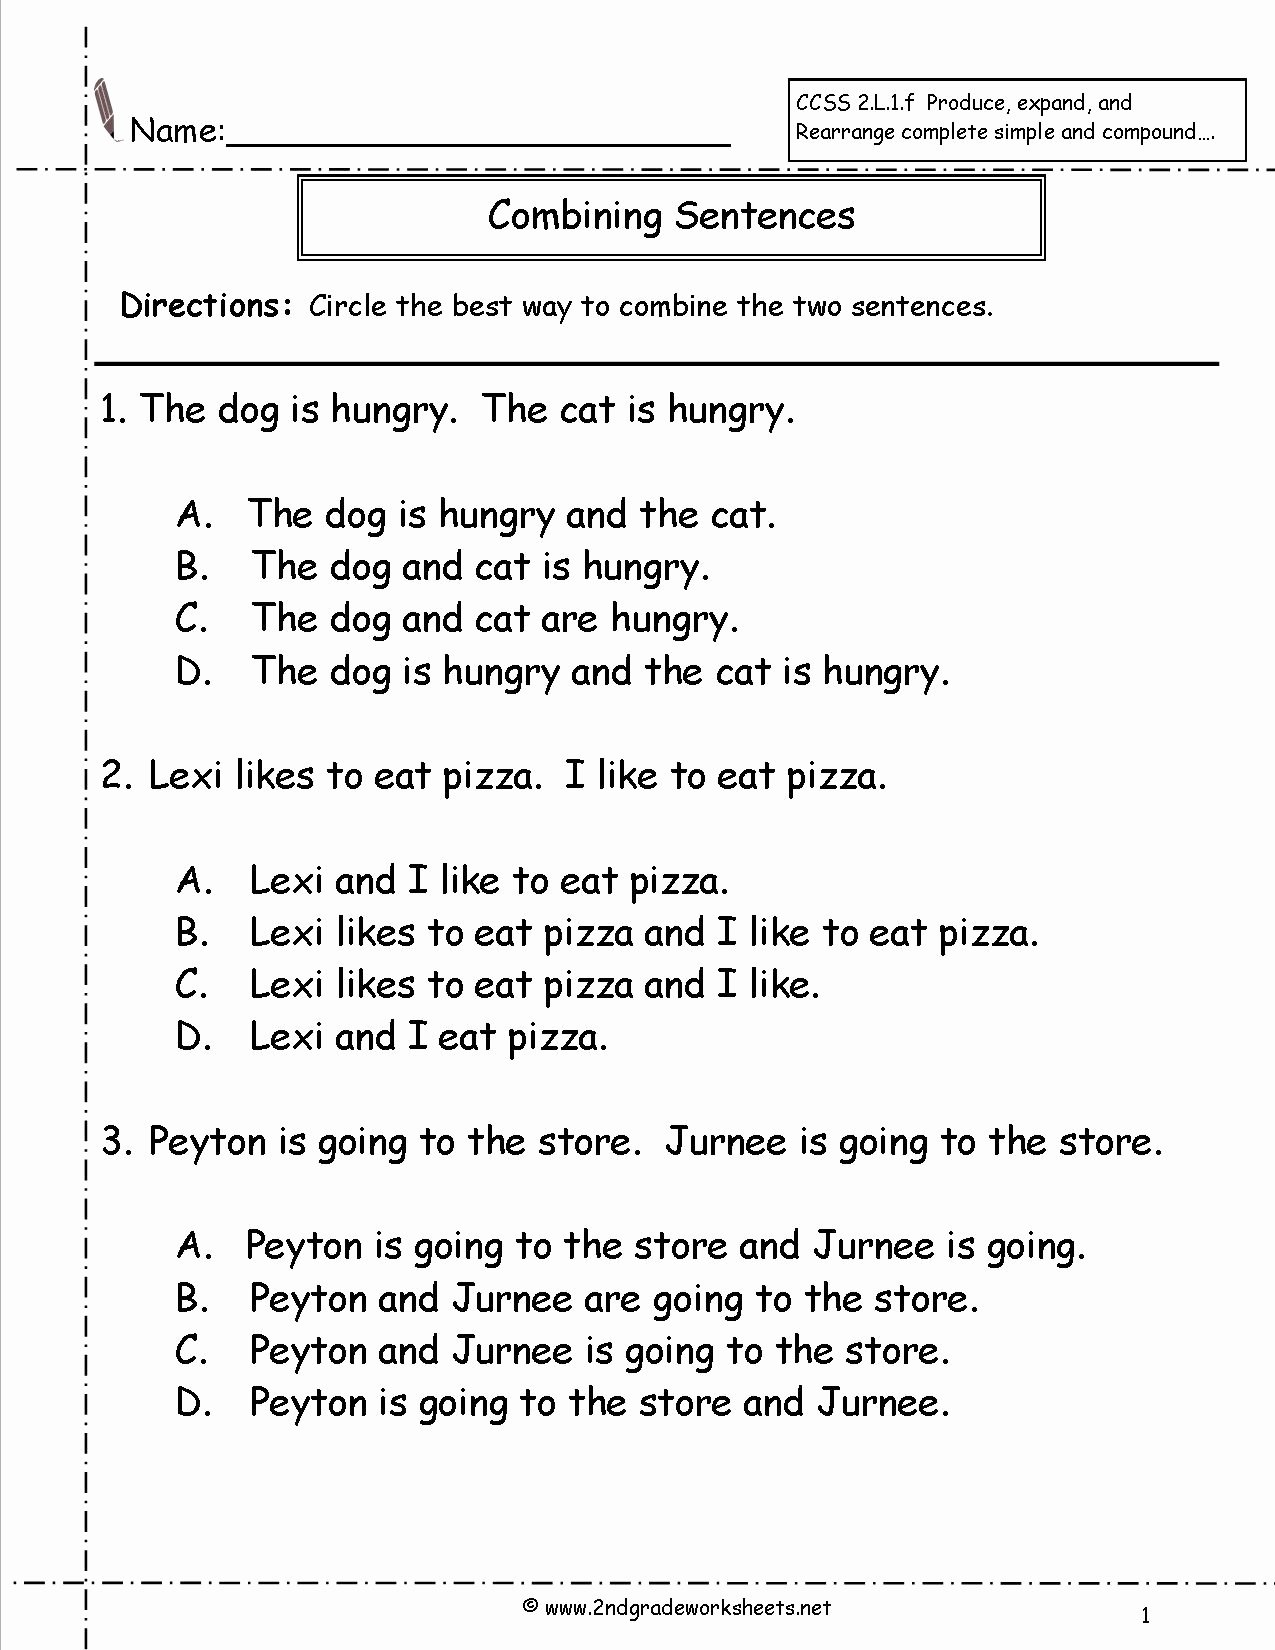 Simple and Compound Sentences Worksheet Beautiful Second Grade Sentences Worksheets Ccss 2 L 1 F Worksheets